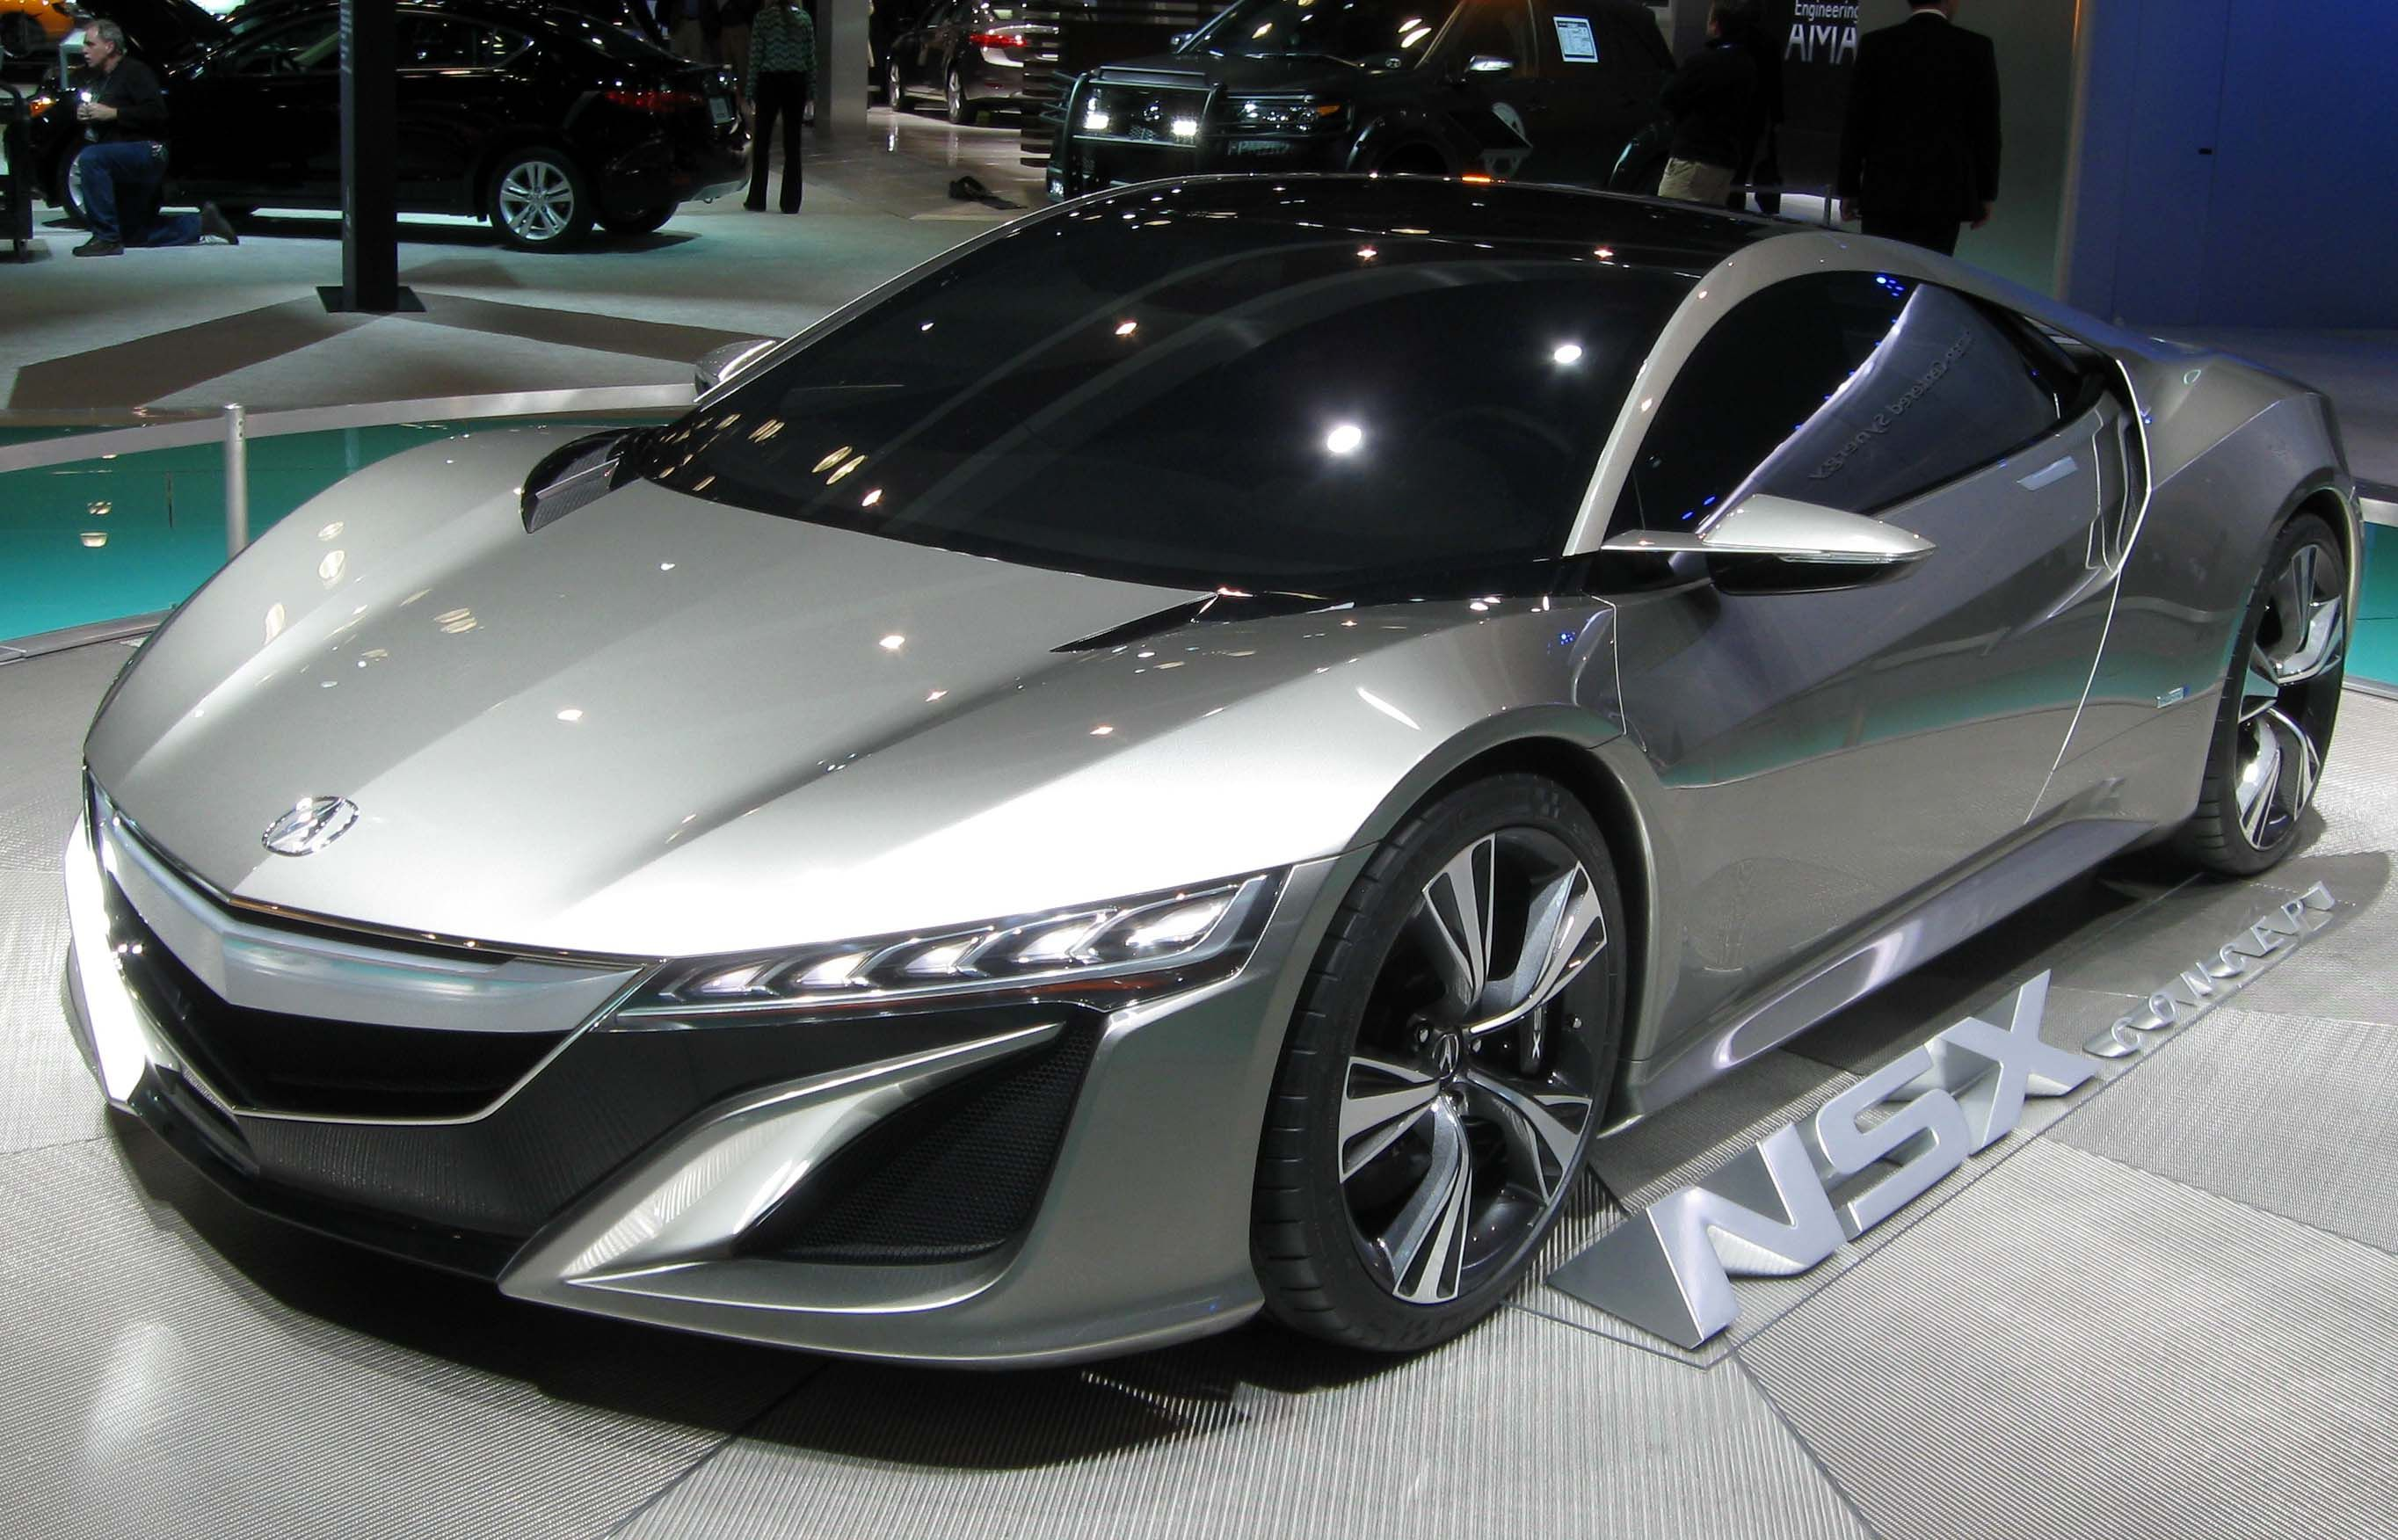 Worksheet. Car HD Wallpaper Acura NSX 2015  Car Wallpaper  Pinterest